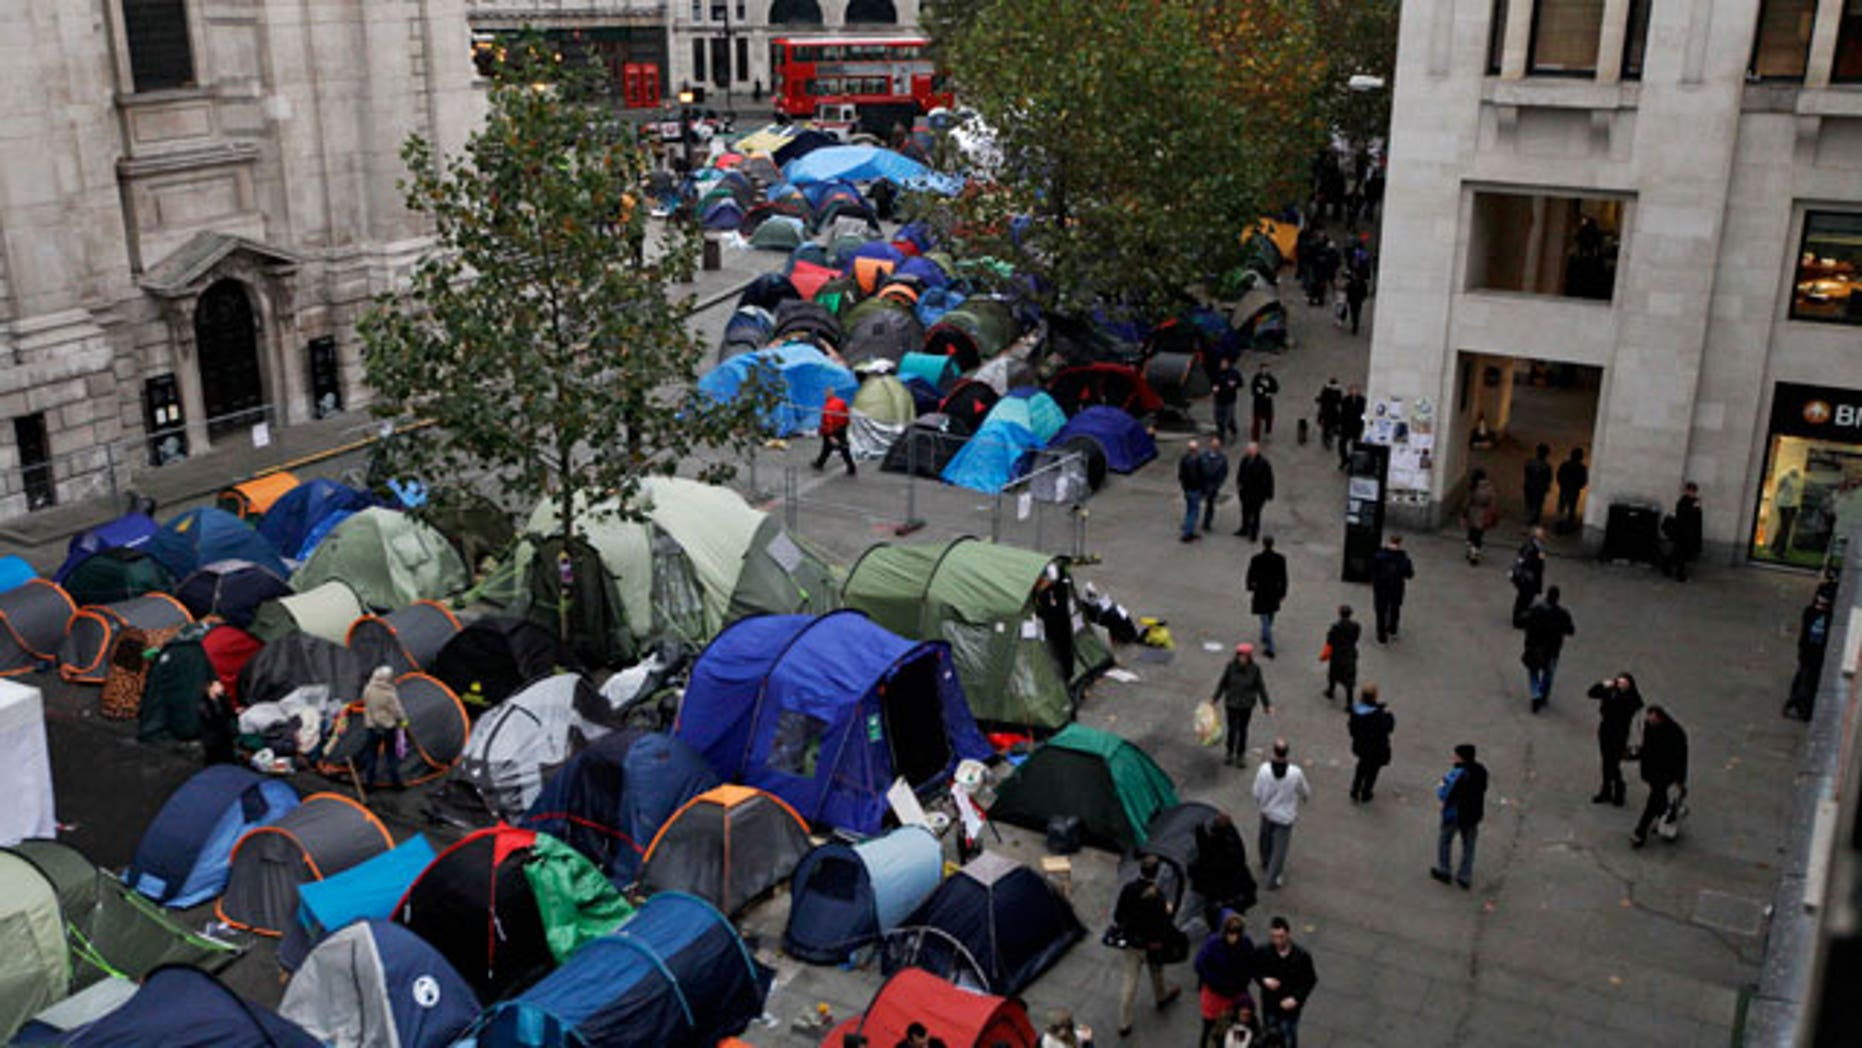 Nov. 7, 2011: Protesters tents stand outside St Paul's Cathedral in London.